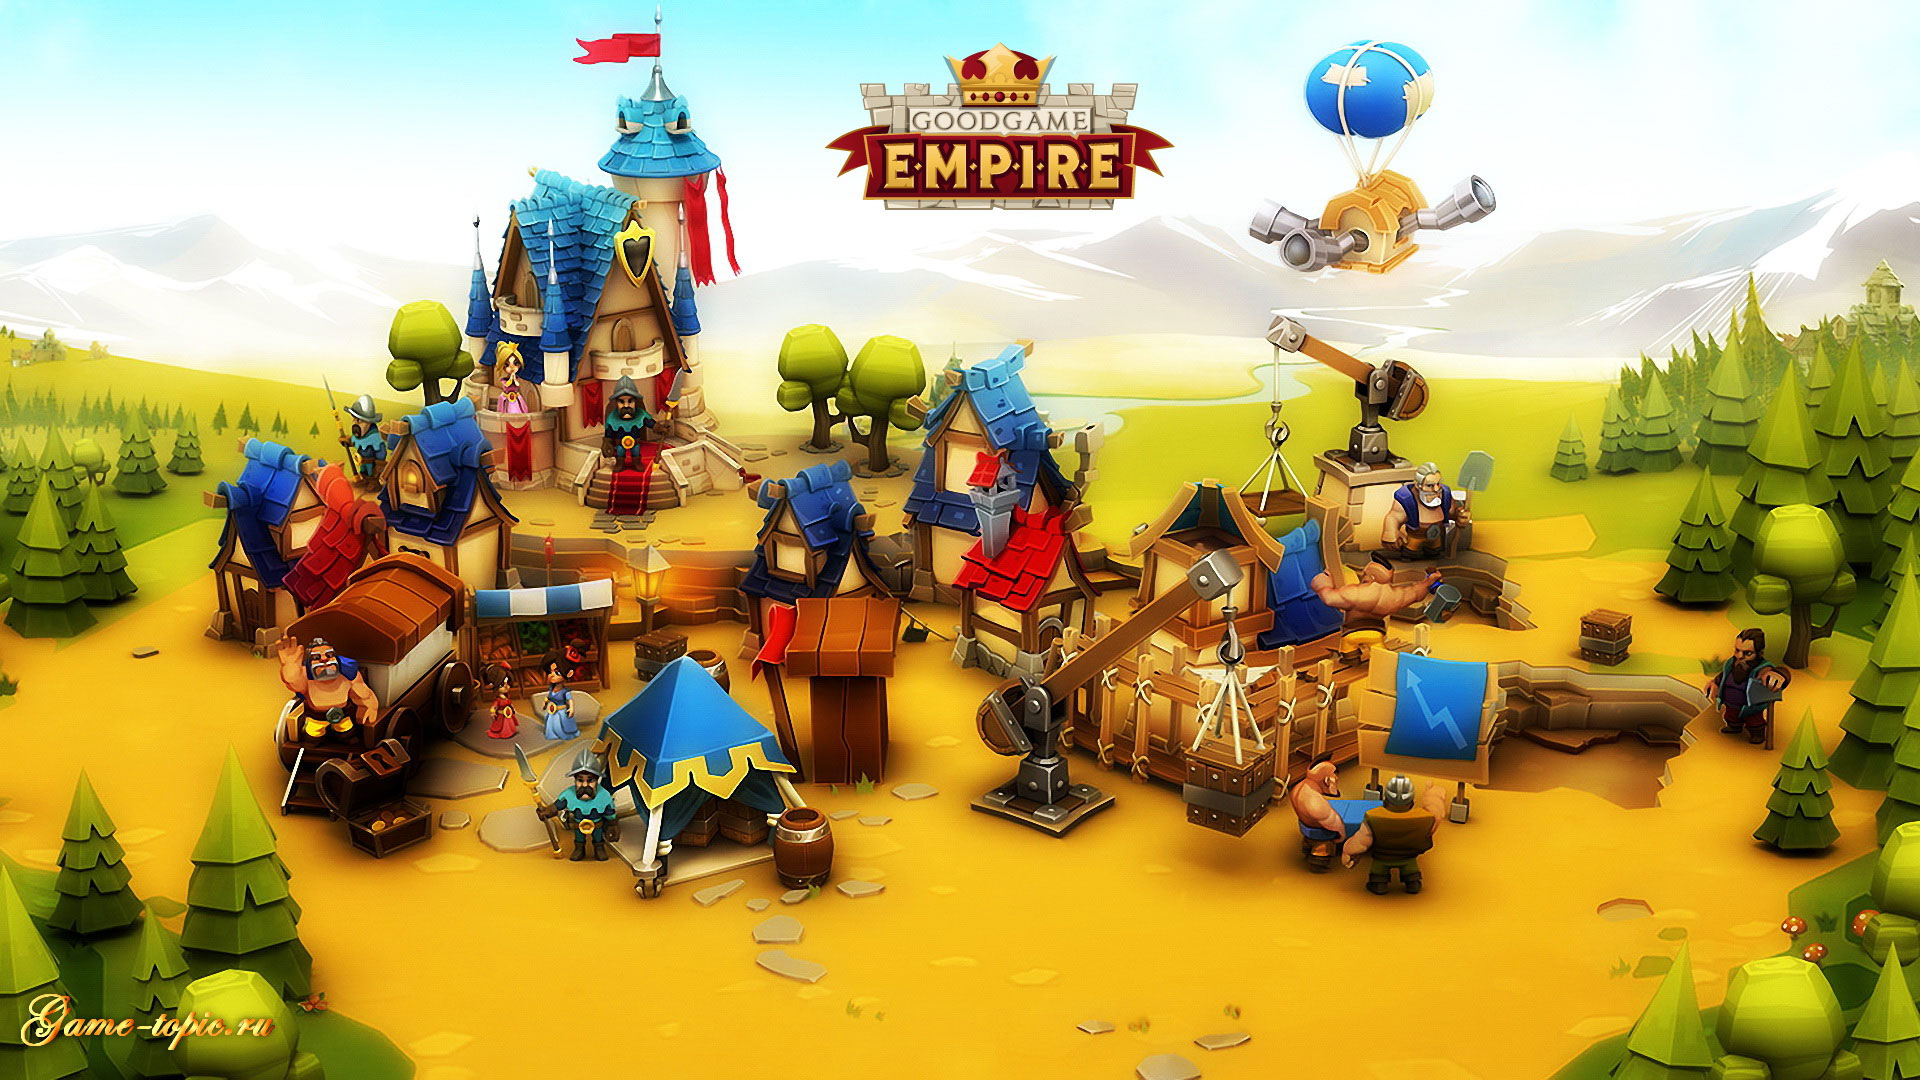 Goodgame Empires